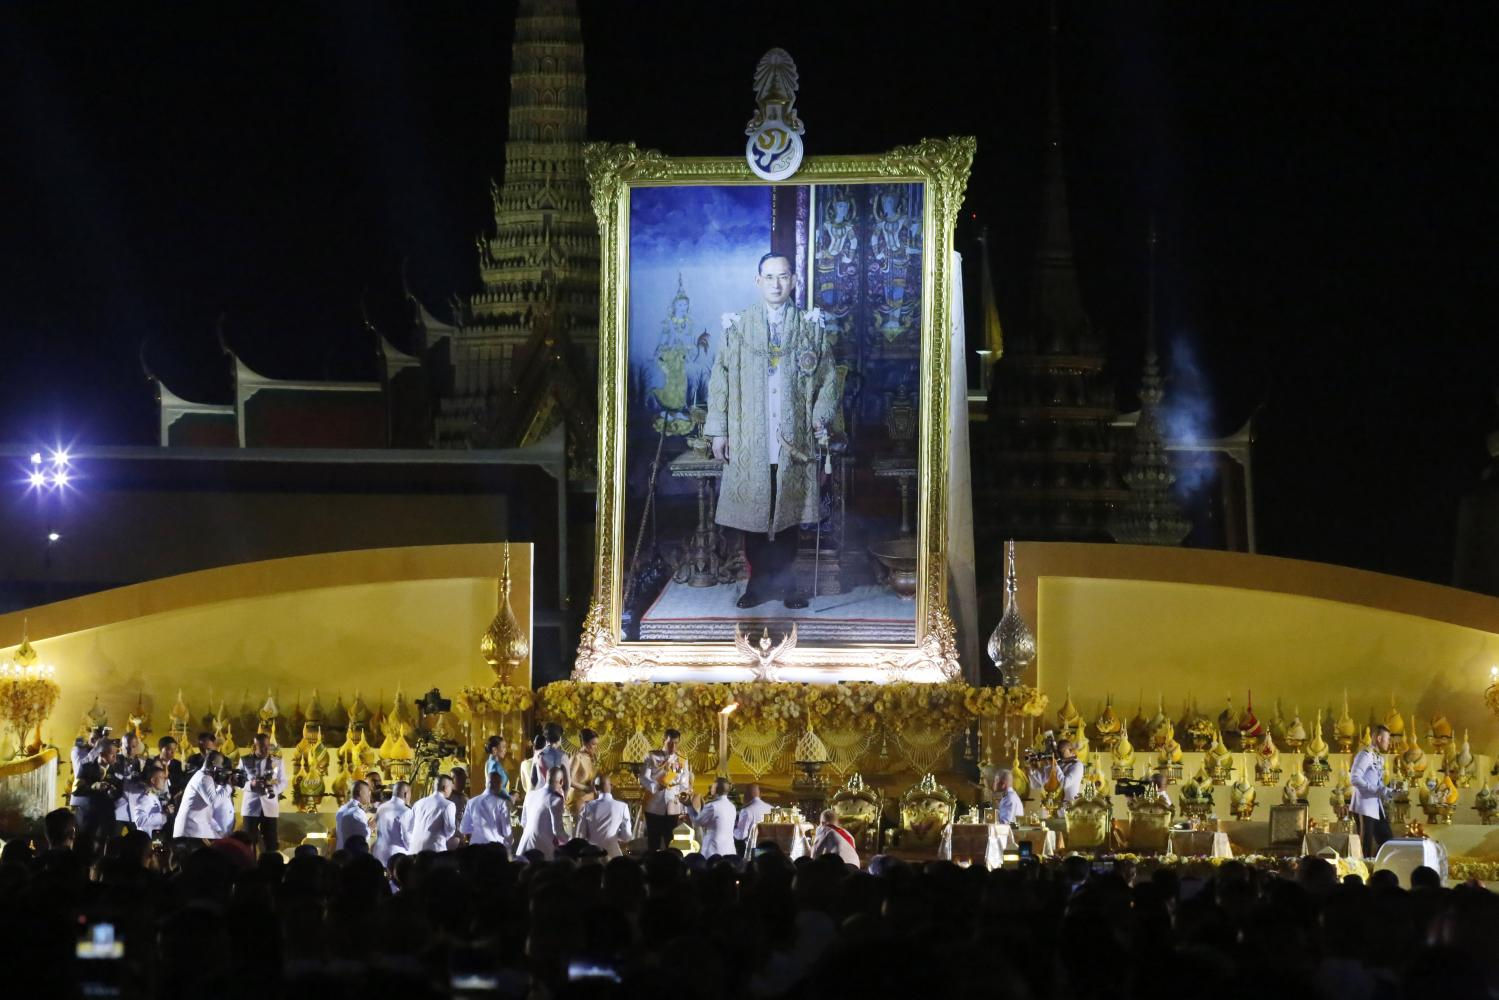 Royal greatness: His Majesty the King presides over a candle lighting ceremony marking the birthday of His Majesty King Bhumibol Adulyadej The Great at Sanam Luang. His Majesty was accompanied by Her Majesty the Queen and members of the royal family. Members of the public also attended the ceremony.